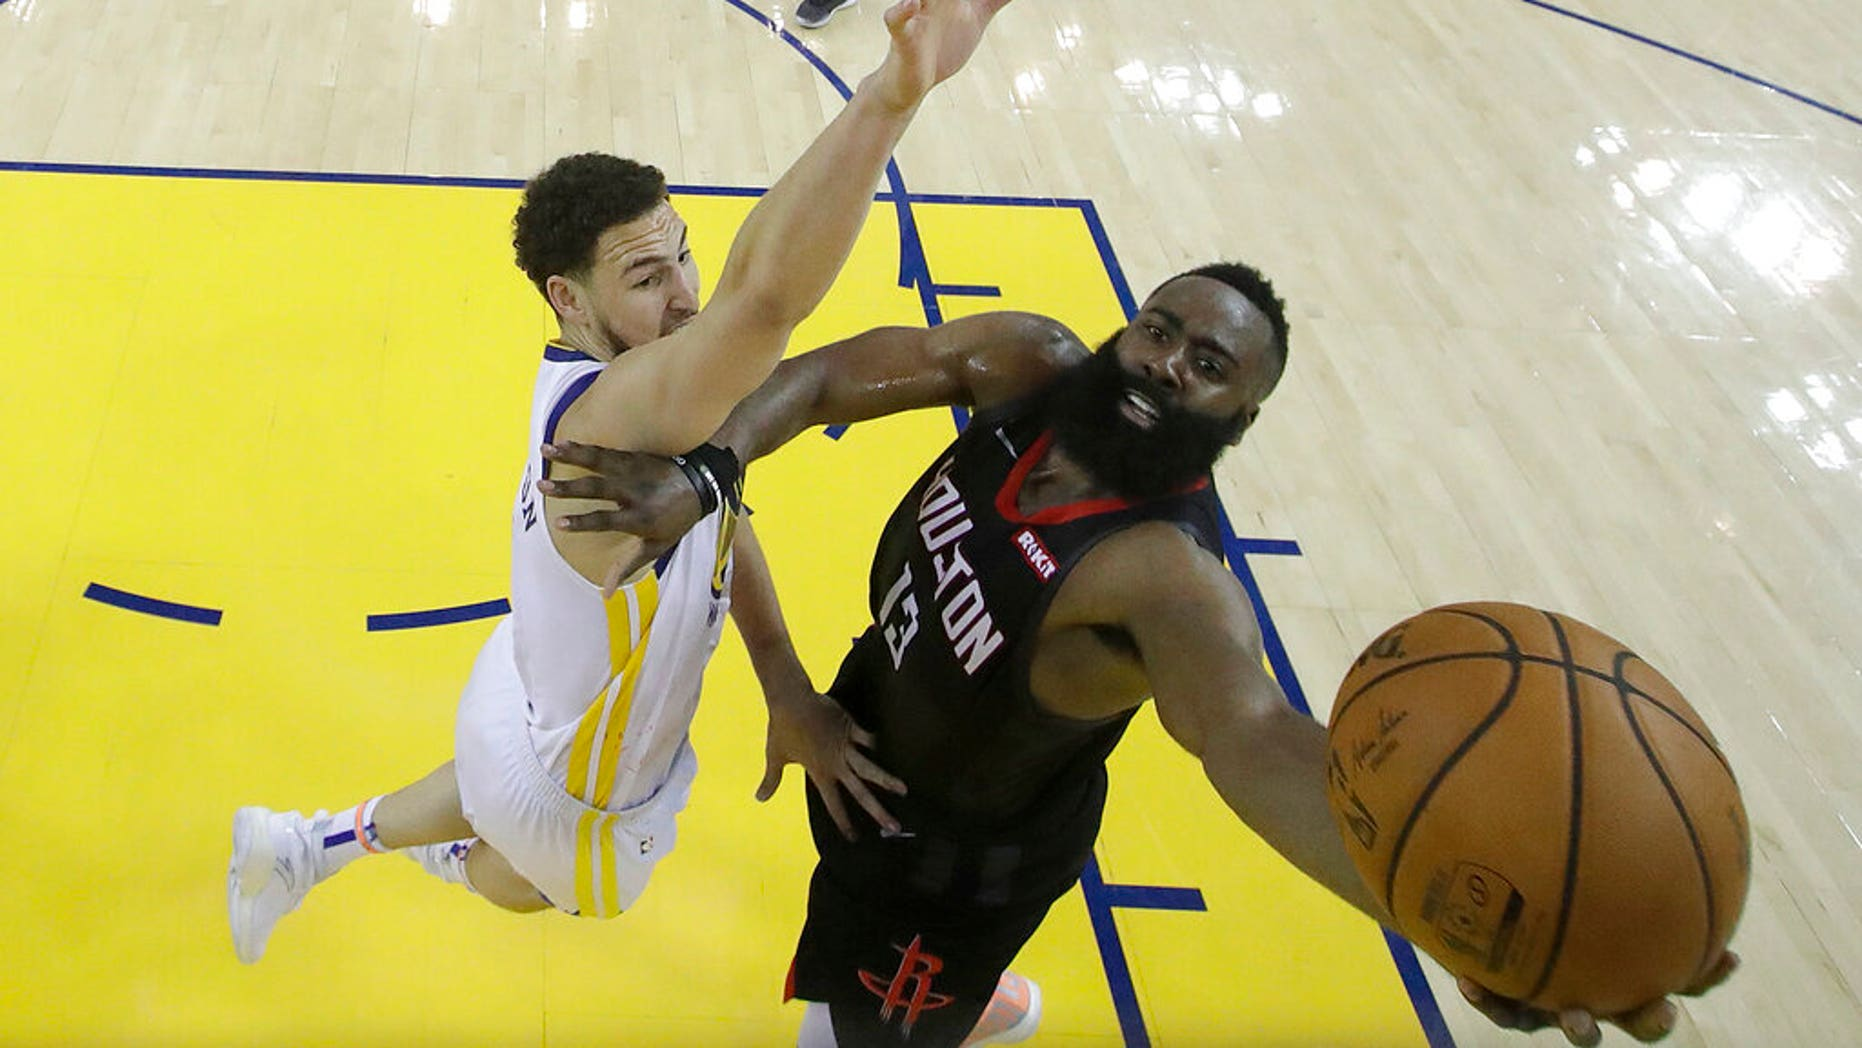 Houston Rockets guard James Harden, right, shoots against Golden State Warriors guard Klay Thompson during the second half of Game 1 of a second-round NBA basketball playoff series in Oakland, Calif.